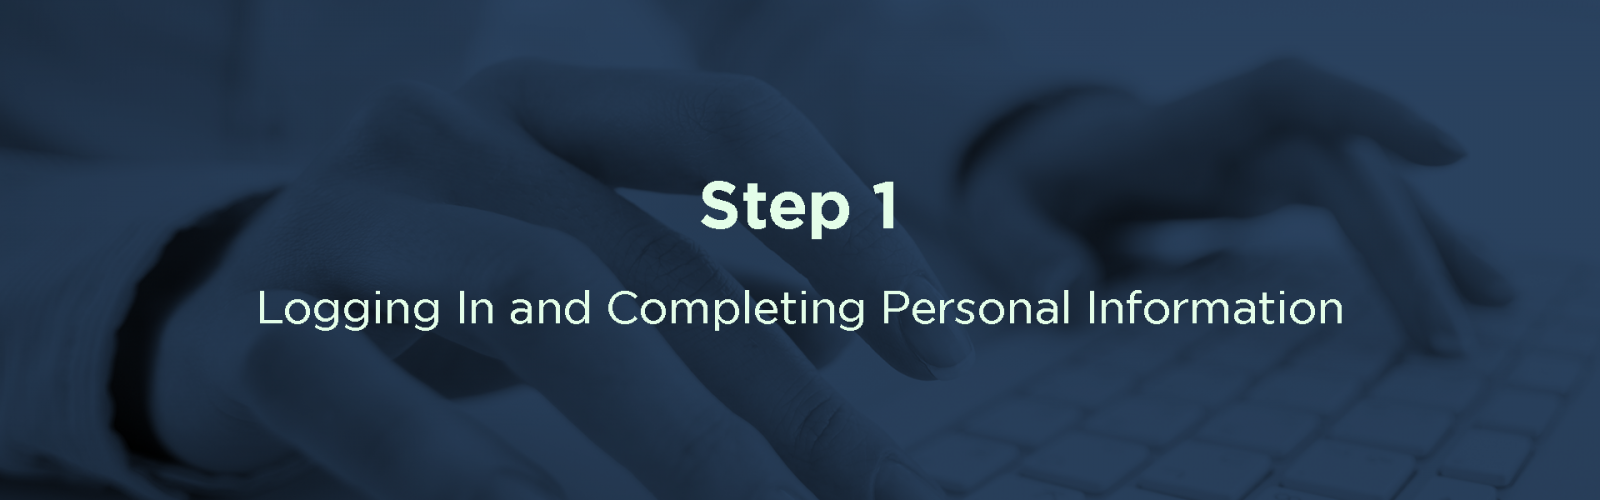 Step 1: Logging in and completing personal information